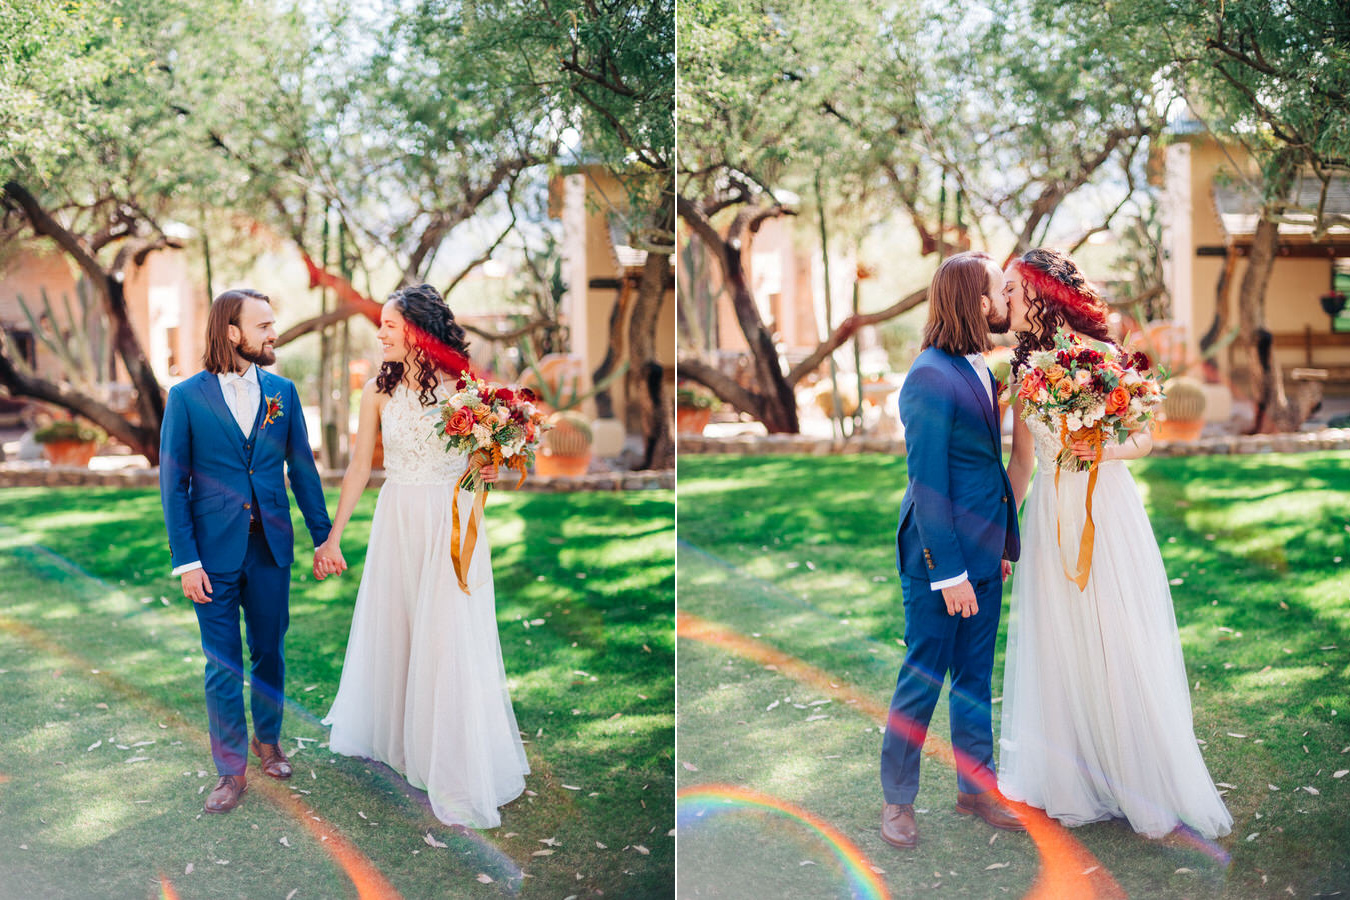 Bride and Groom at wedding at Tanque Verde Ranch in Tucson, Arizona